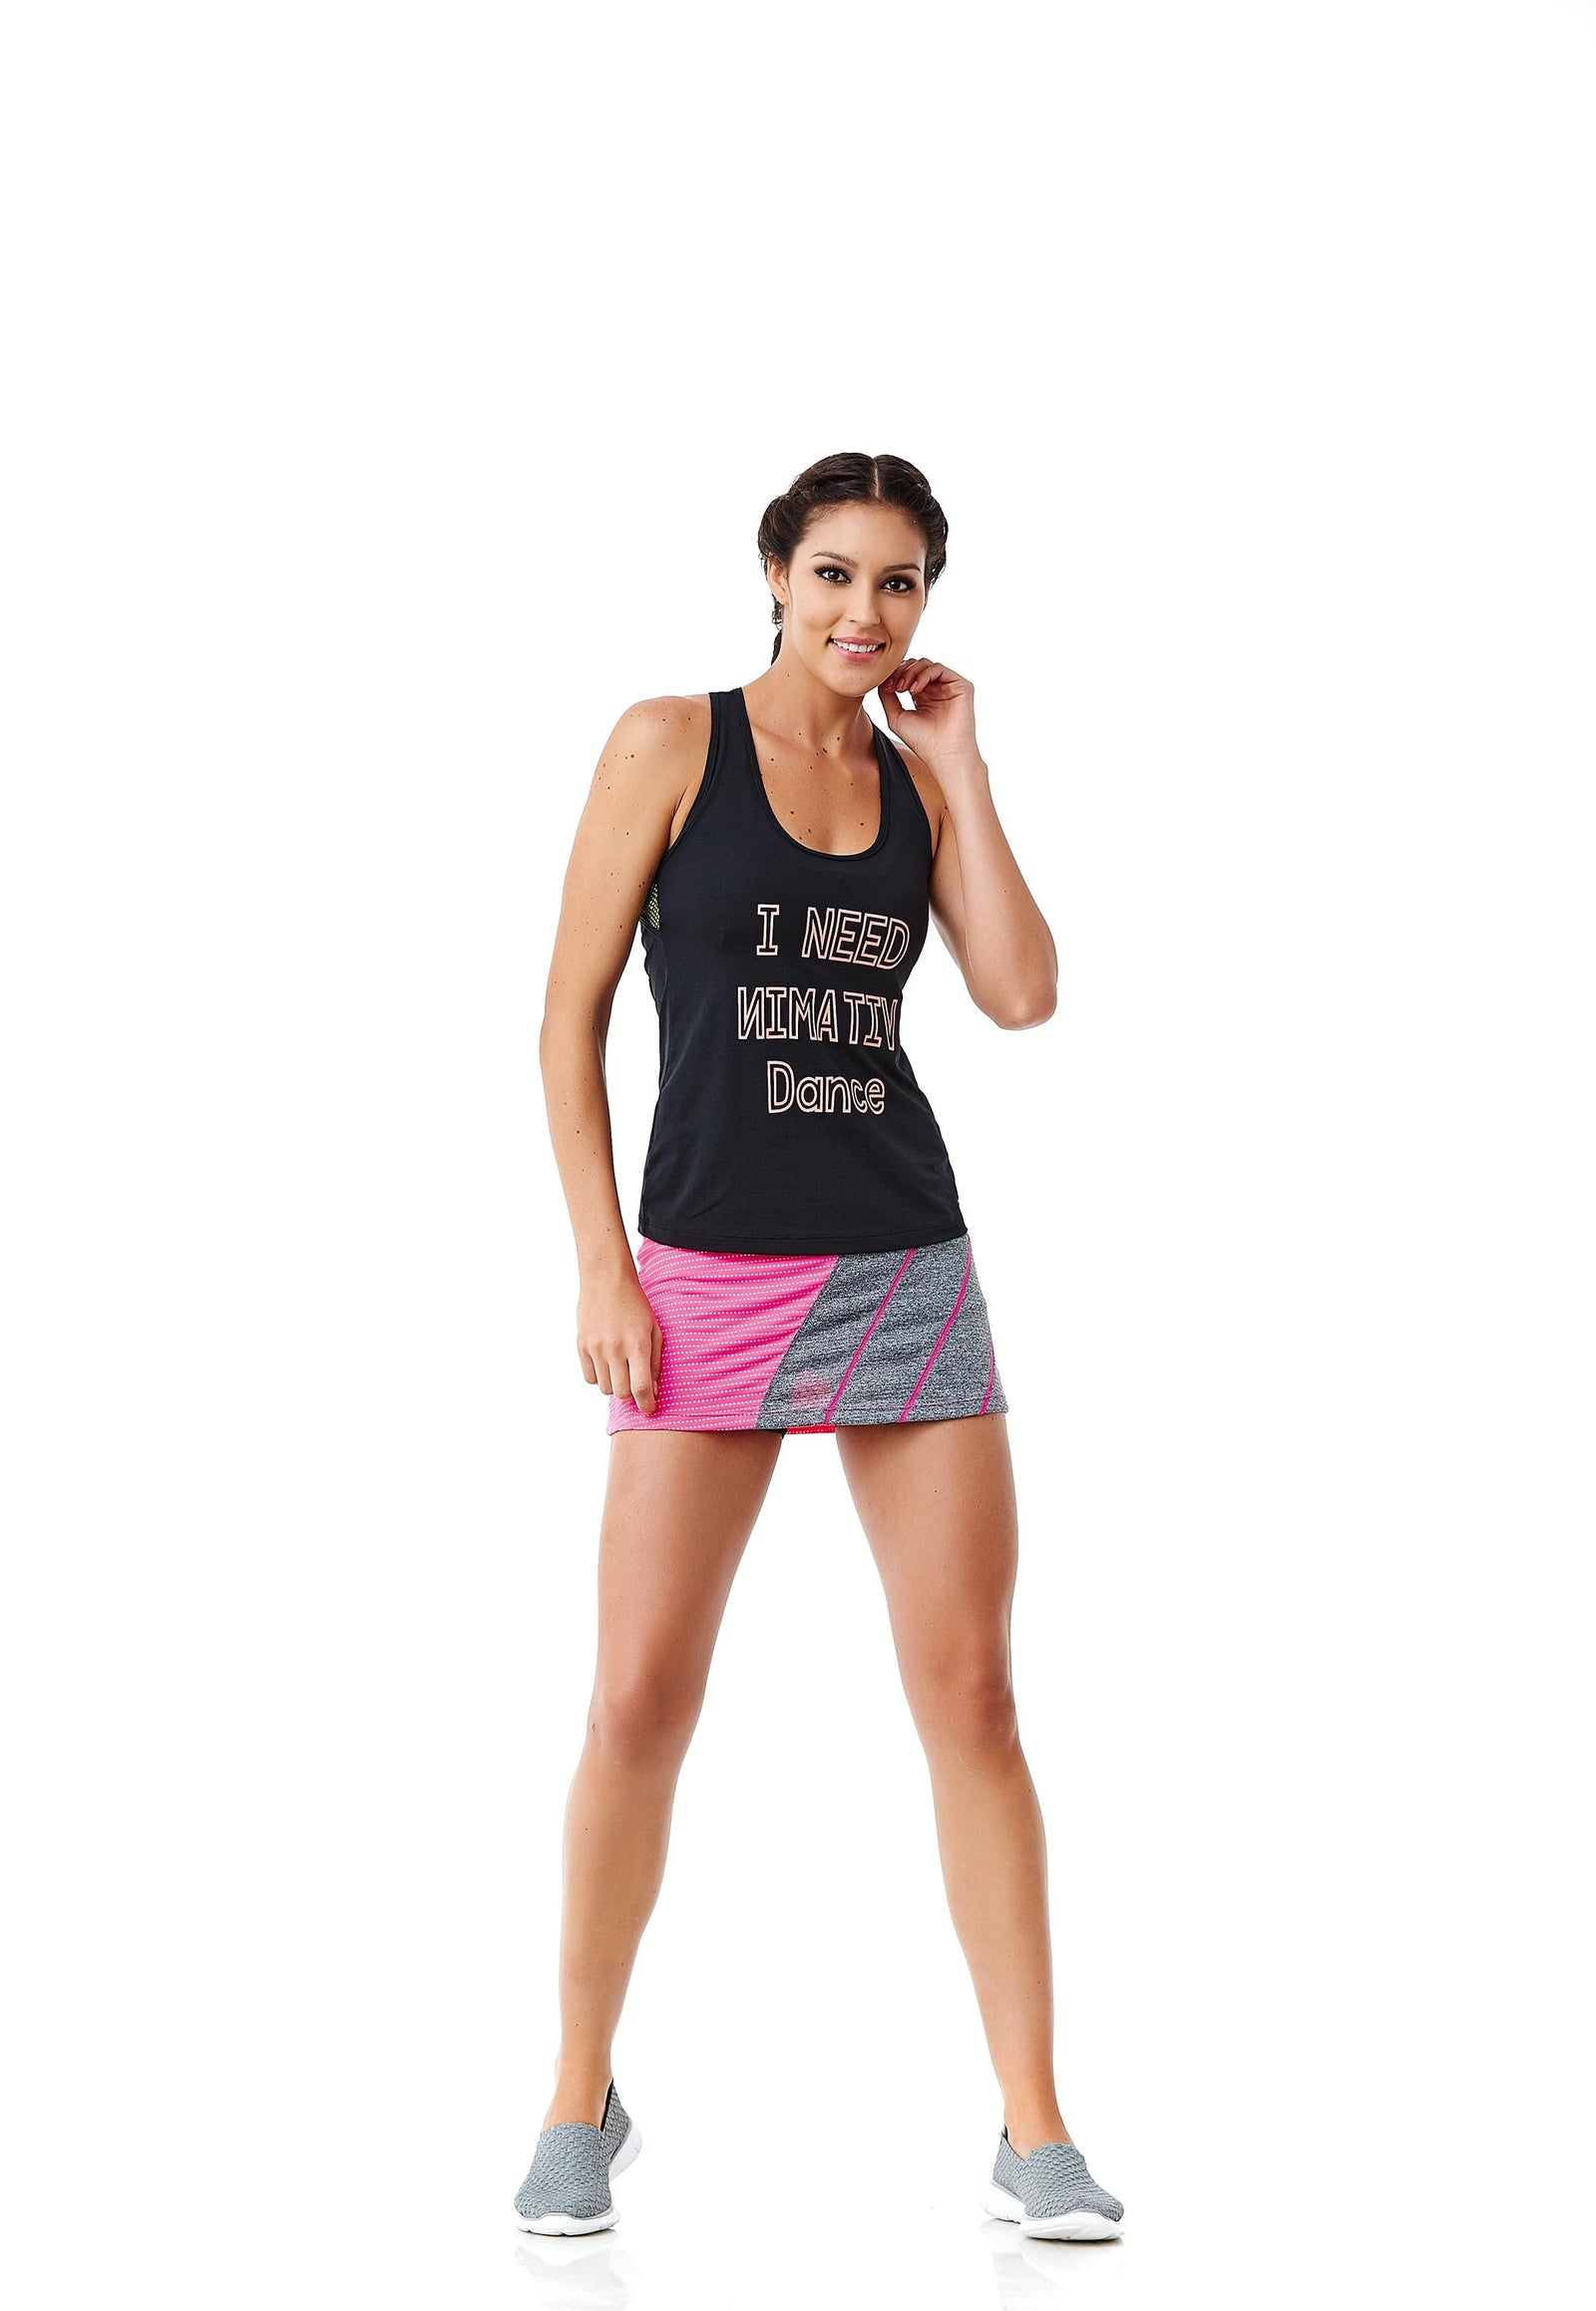 CajuBrasil USA Outlet Luxury Brazilian Fitness Tennis Skort Pink 6216